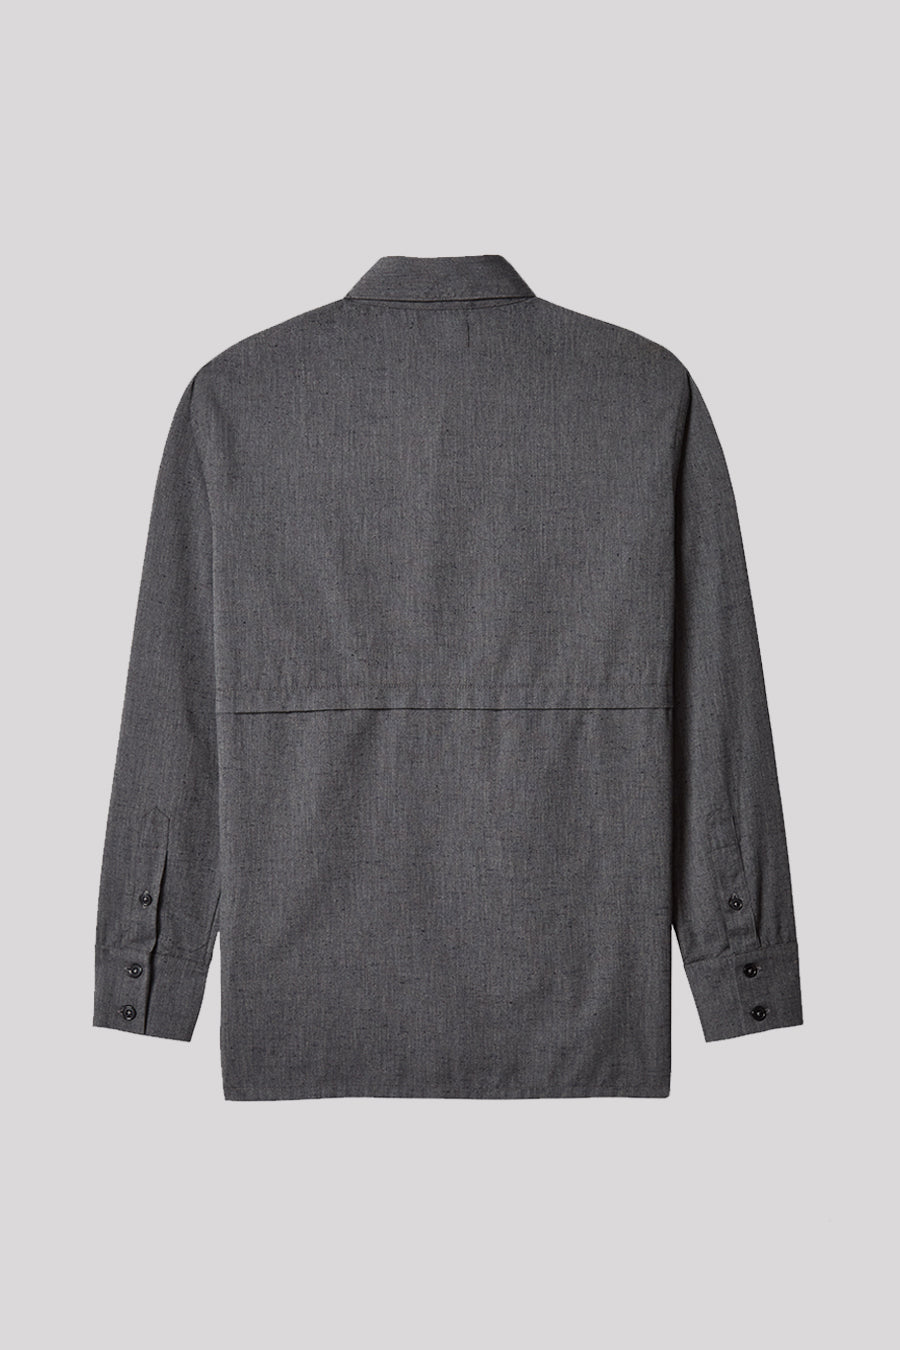 Anthracite Button Down